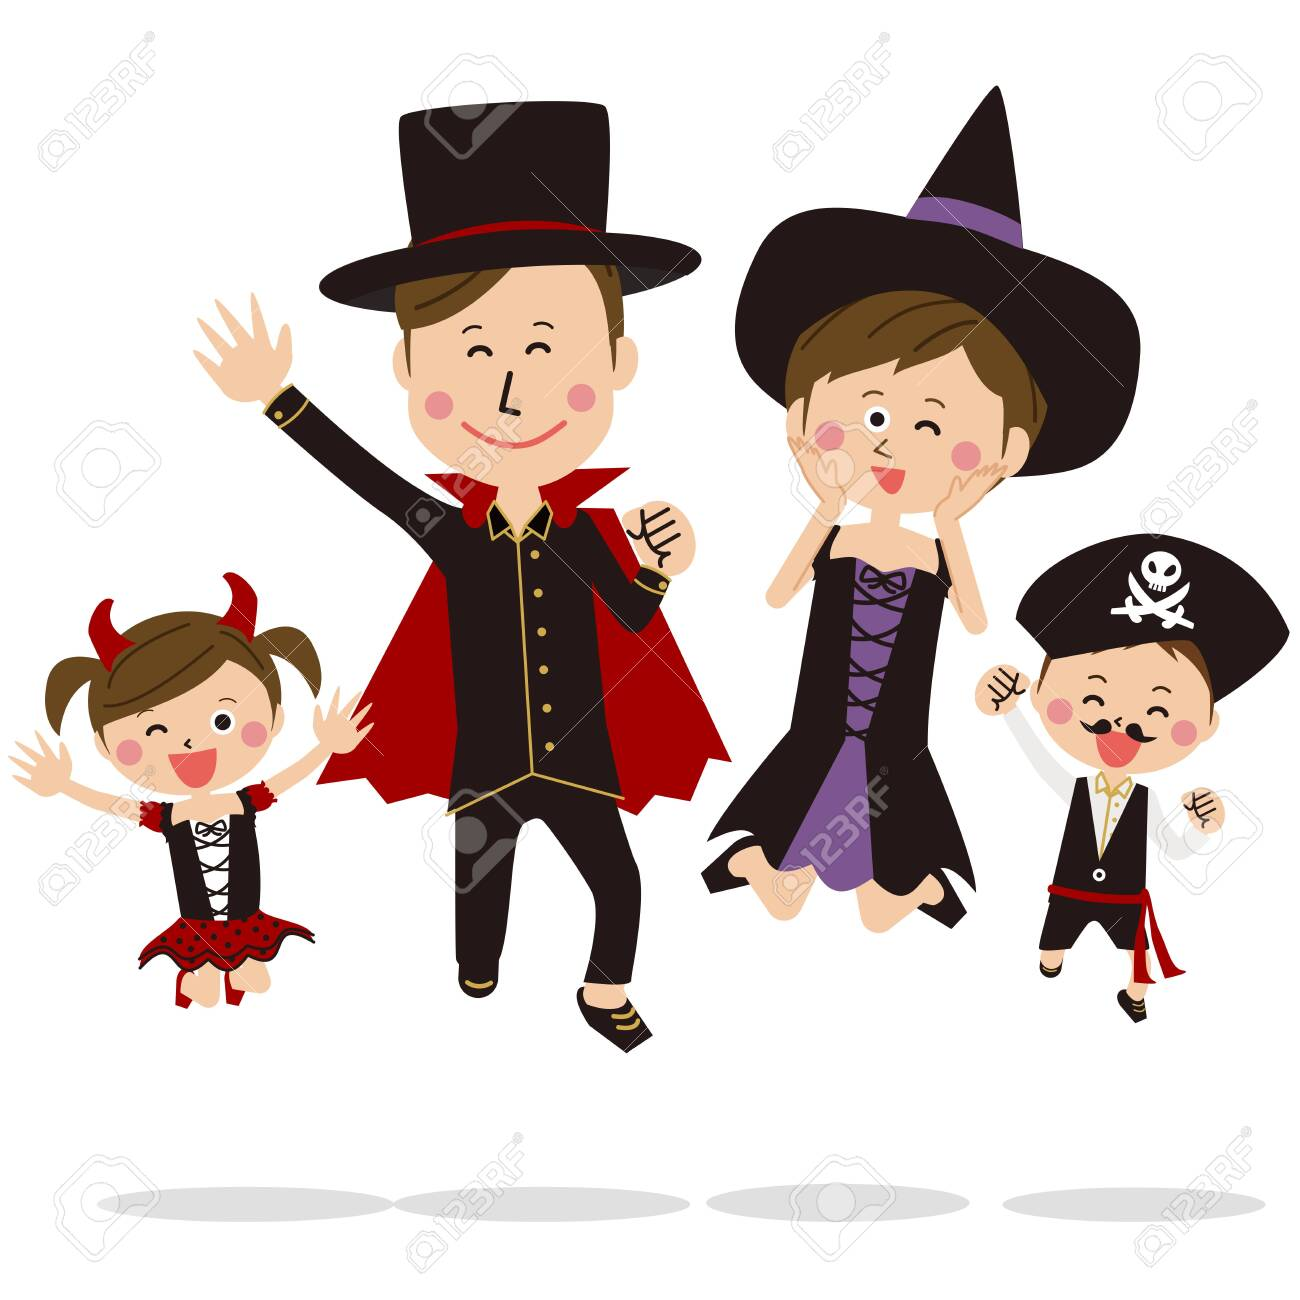 Pop Family Wearing Halloween Costumes And Jumping Fine Royalty Free Cliparts Vectors And Stock Illustration Image 128475994